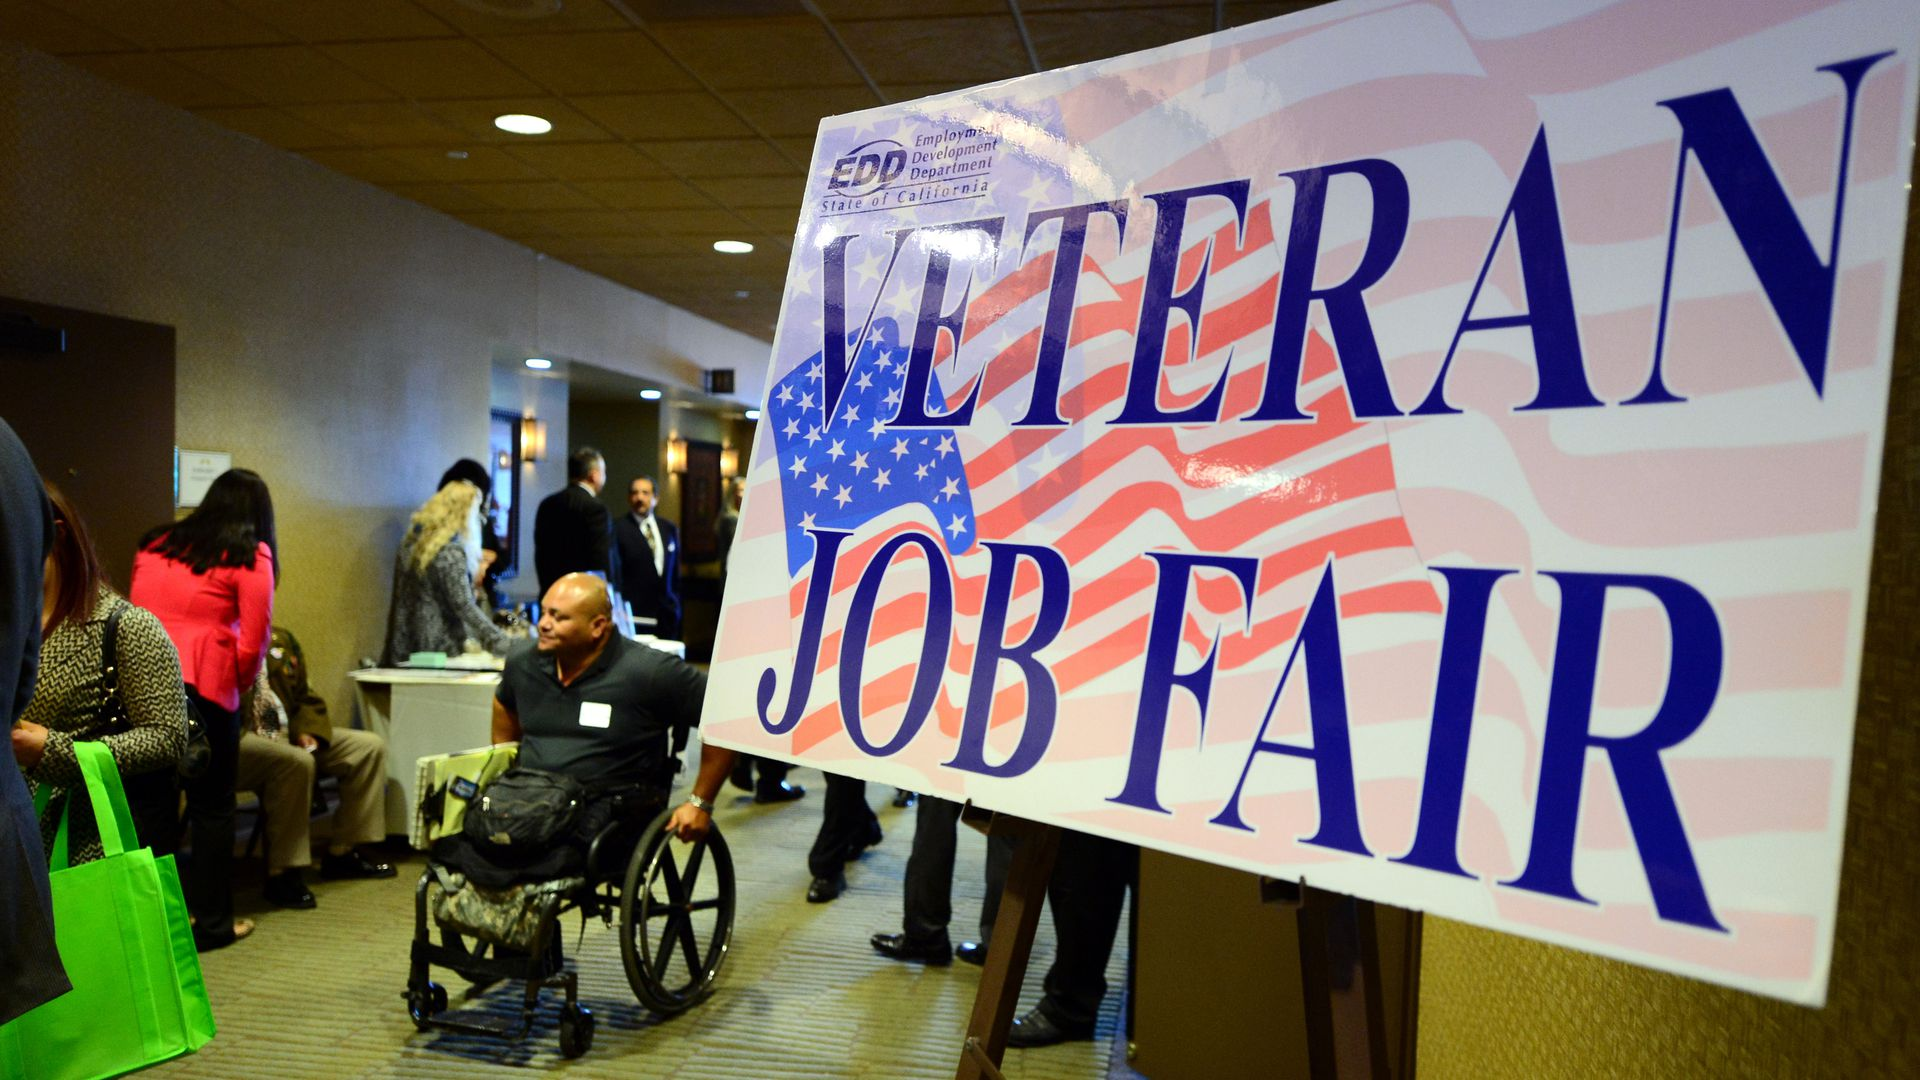 Veteran Job Fair Sign